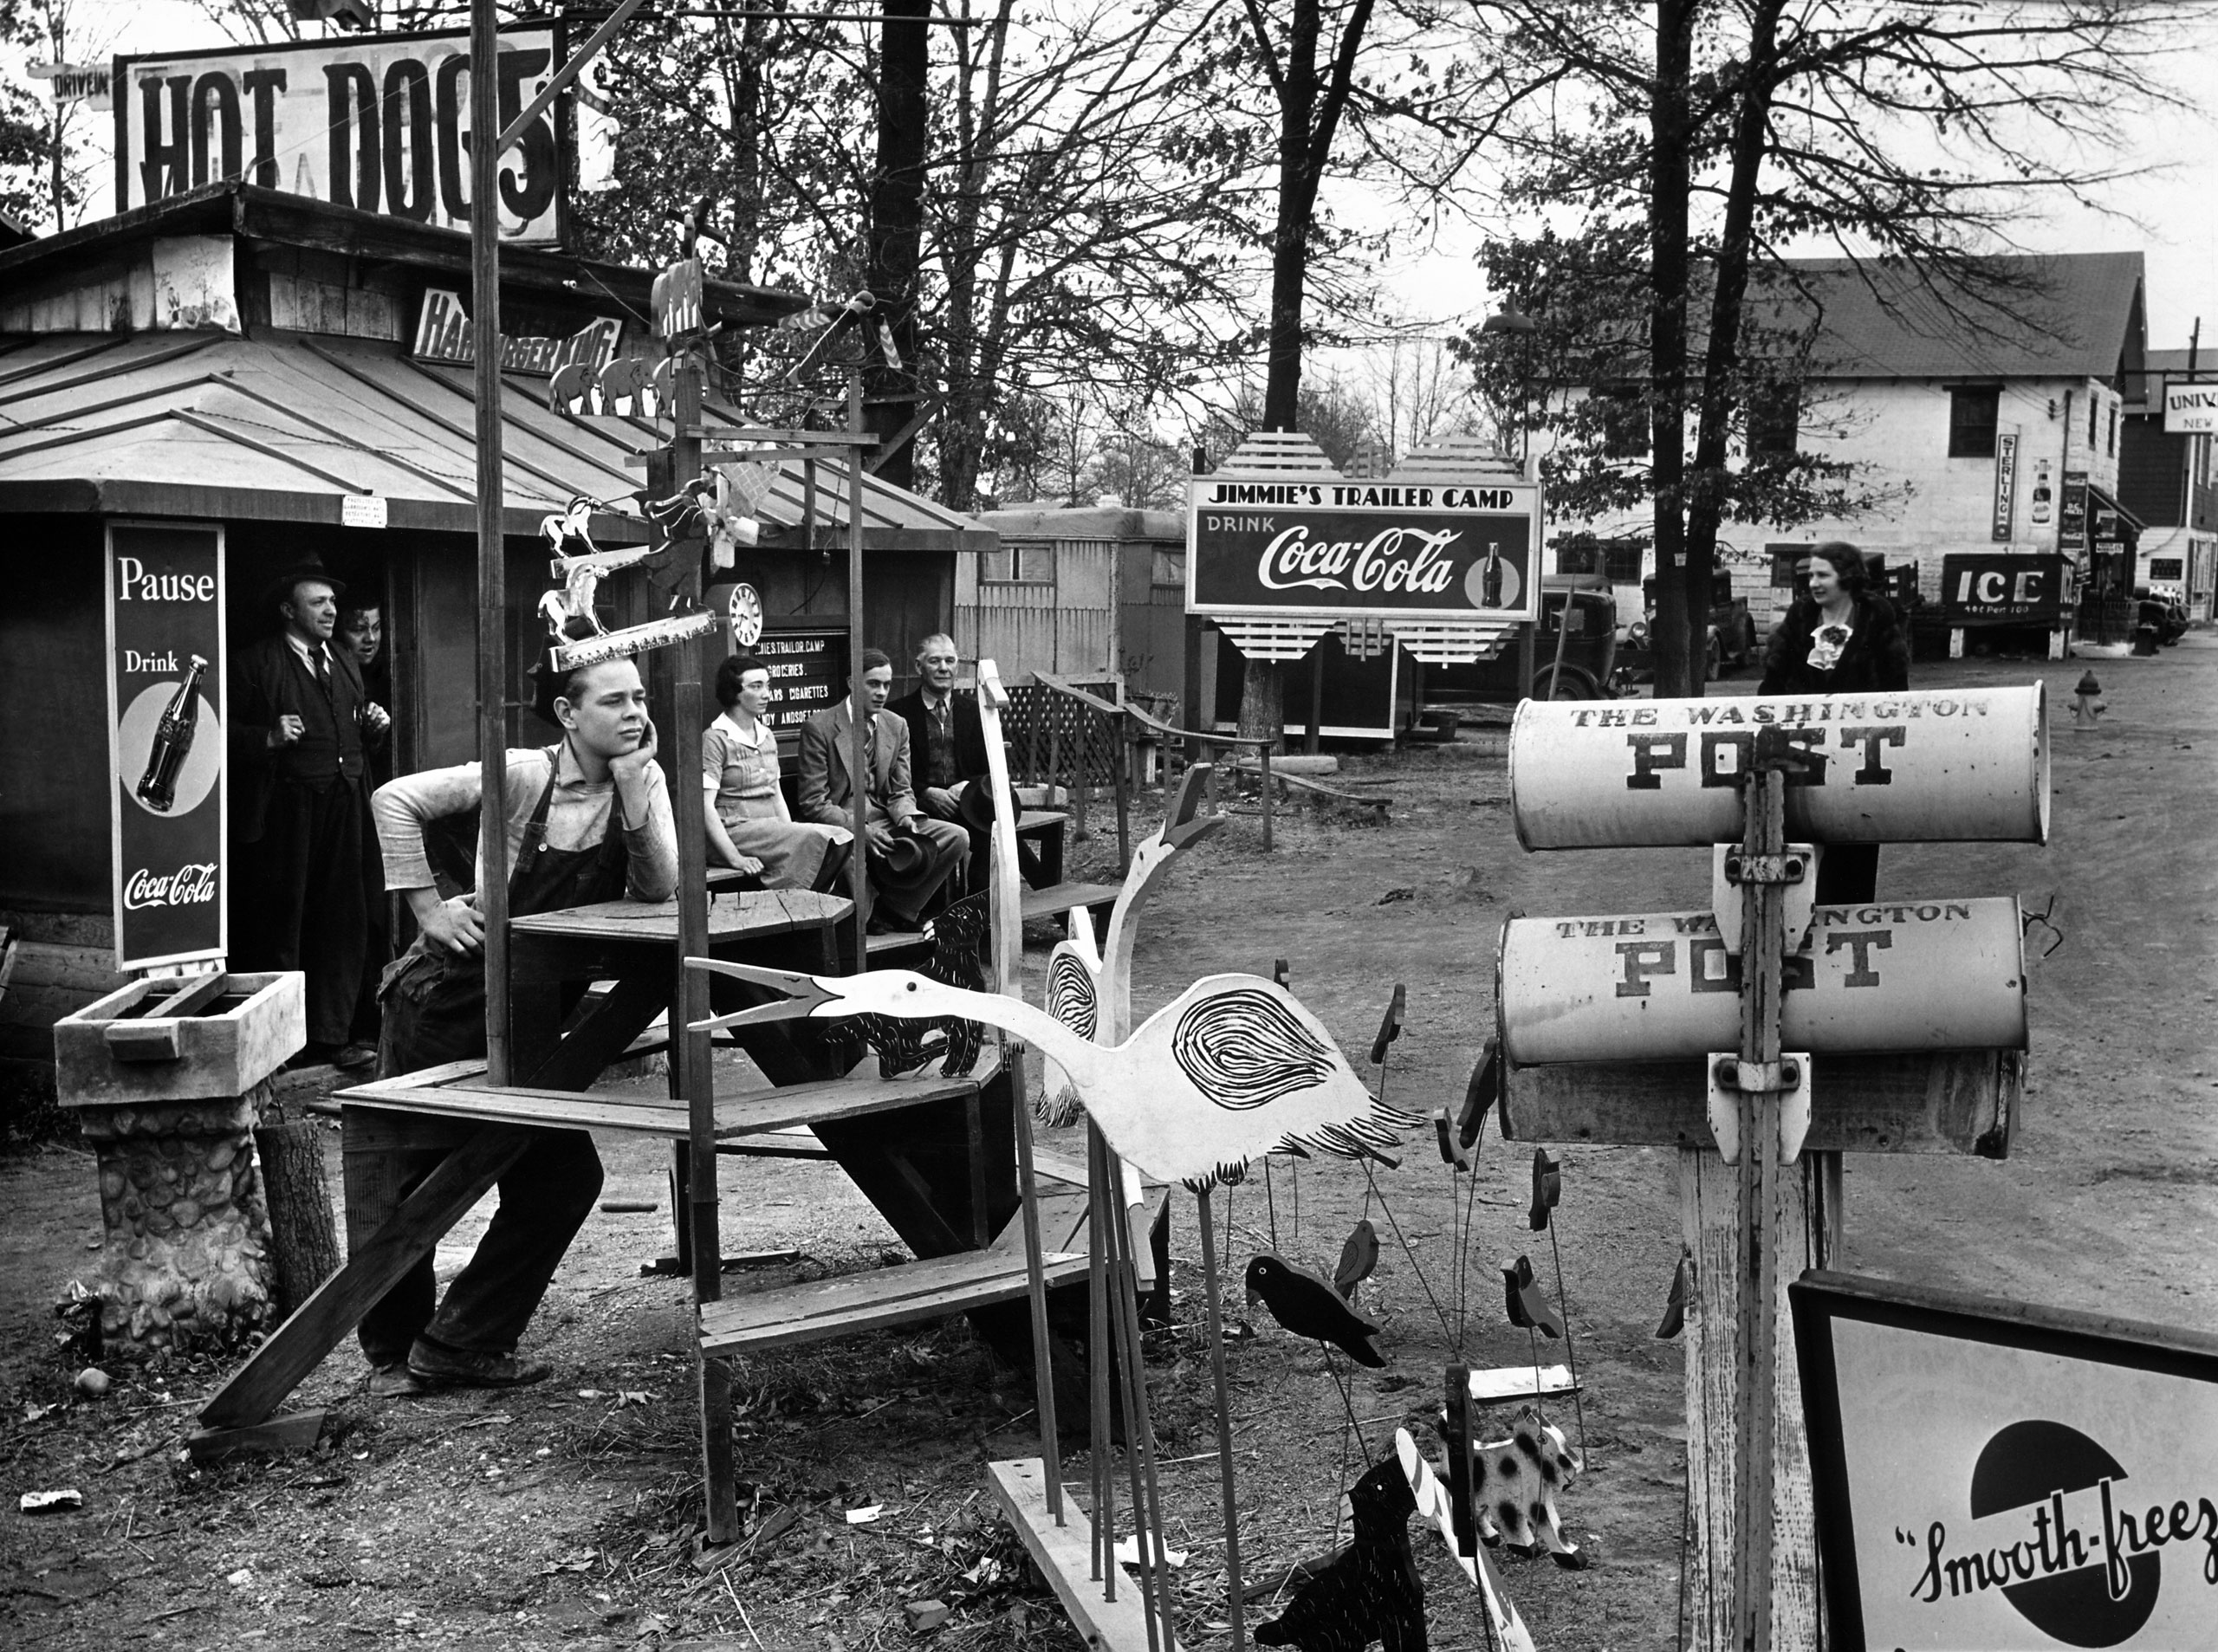 Coca-Cola is on sale at Jimmie's Trailer Camp on U.S. 1, outside of Washington, D.C., in 1938.